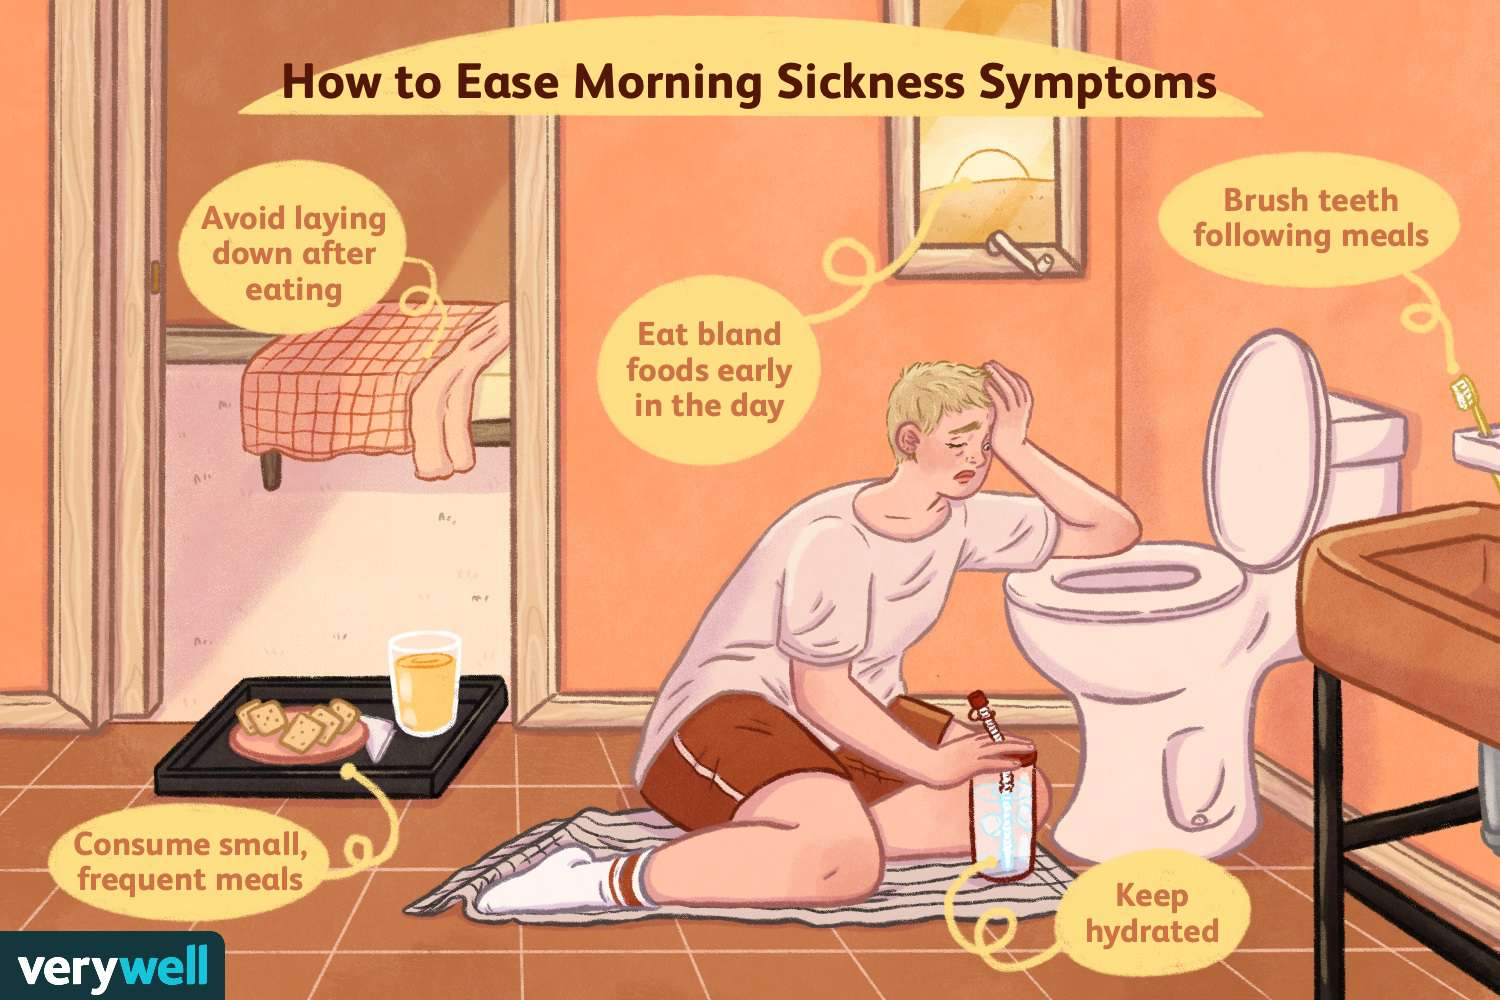 How to Ease Morning Sickness Symptoms